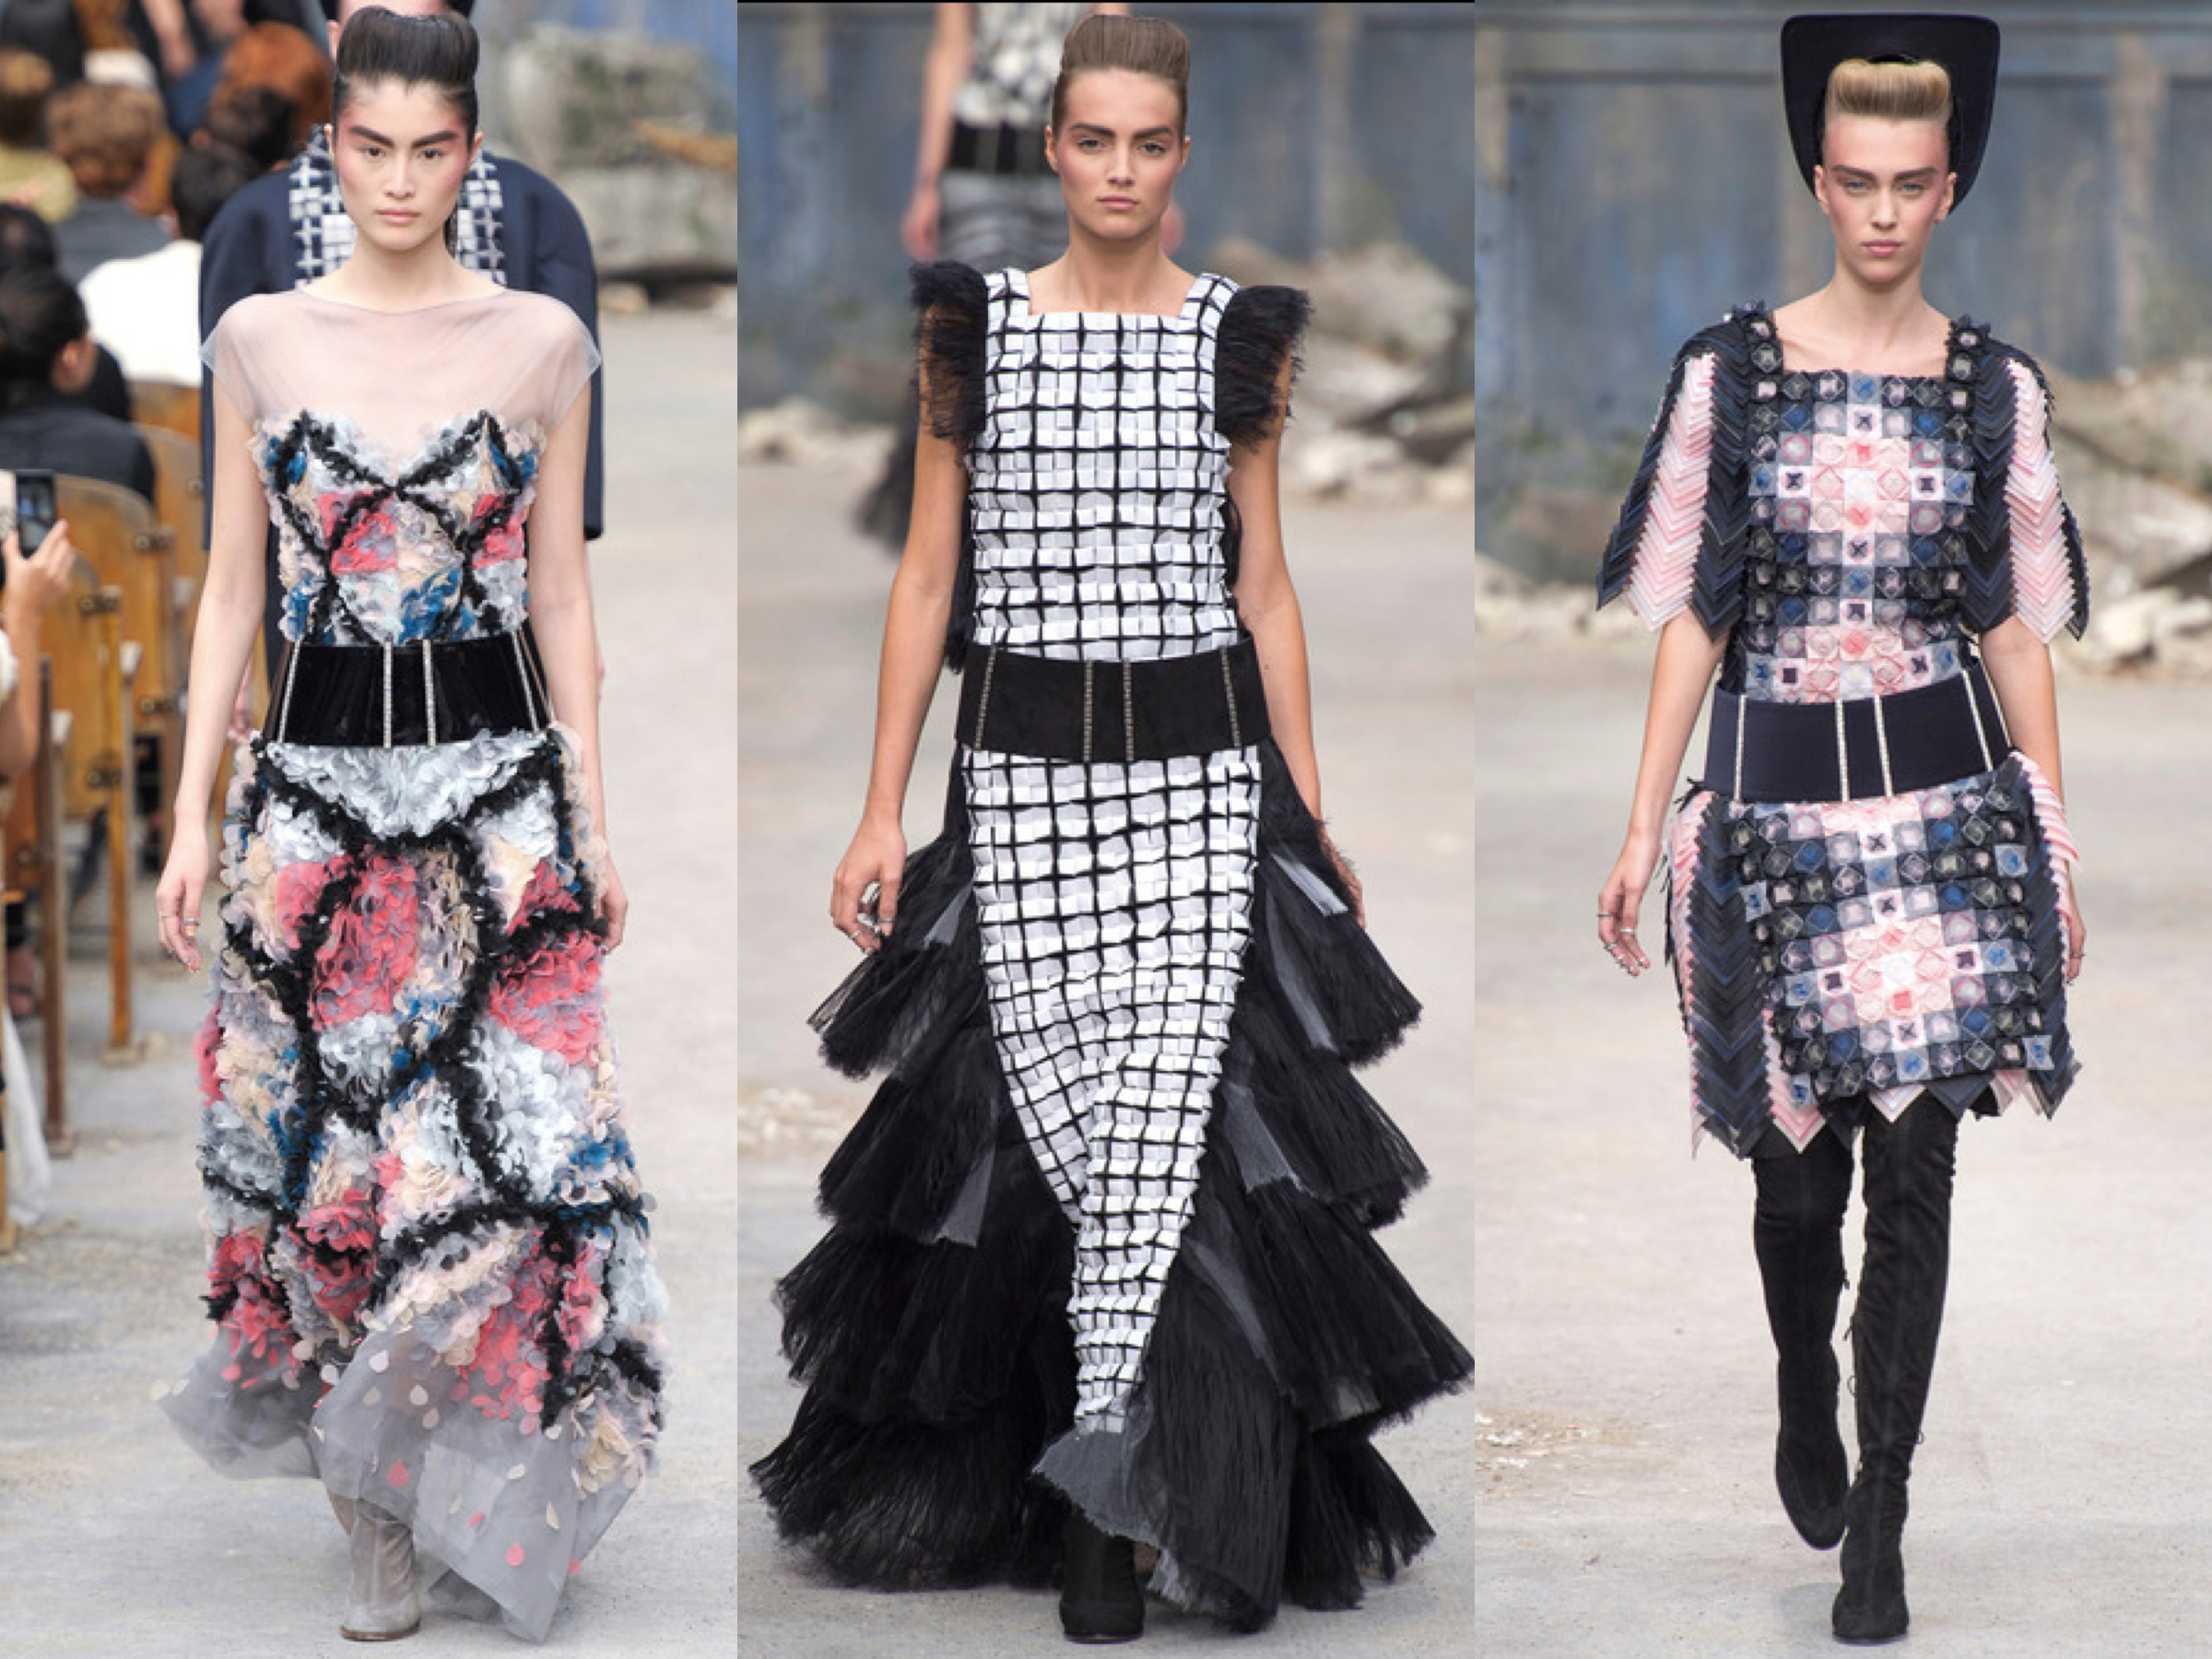 Chanel Fall Couture collage 2013